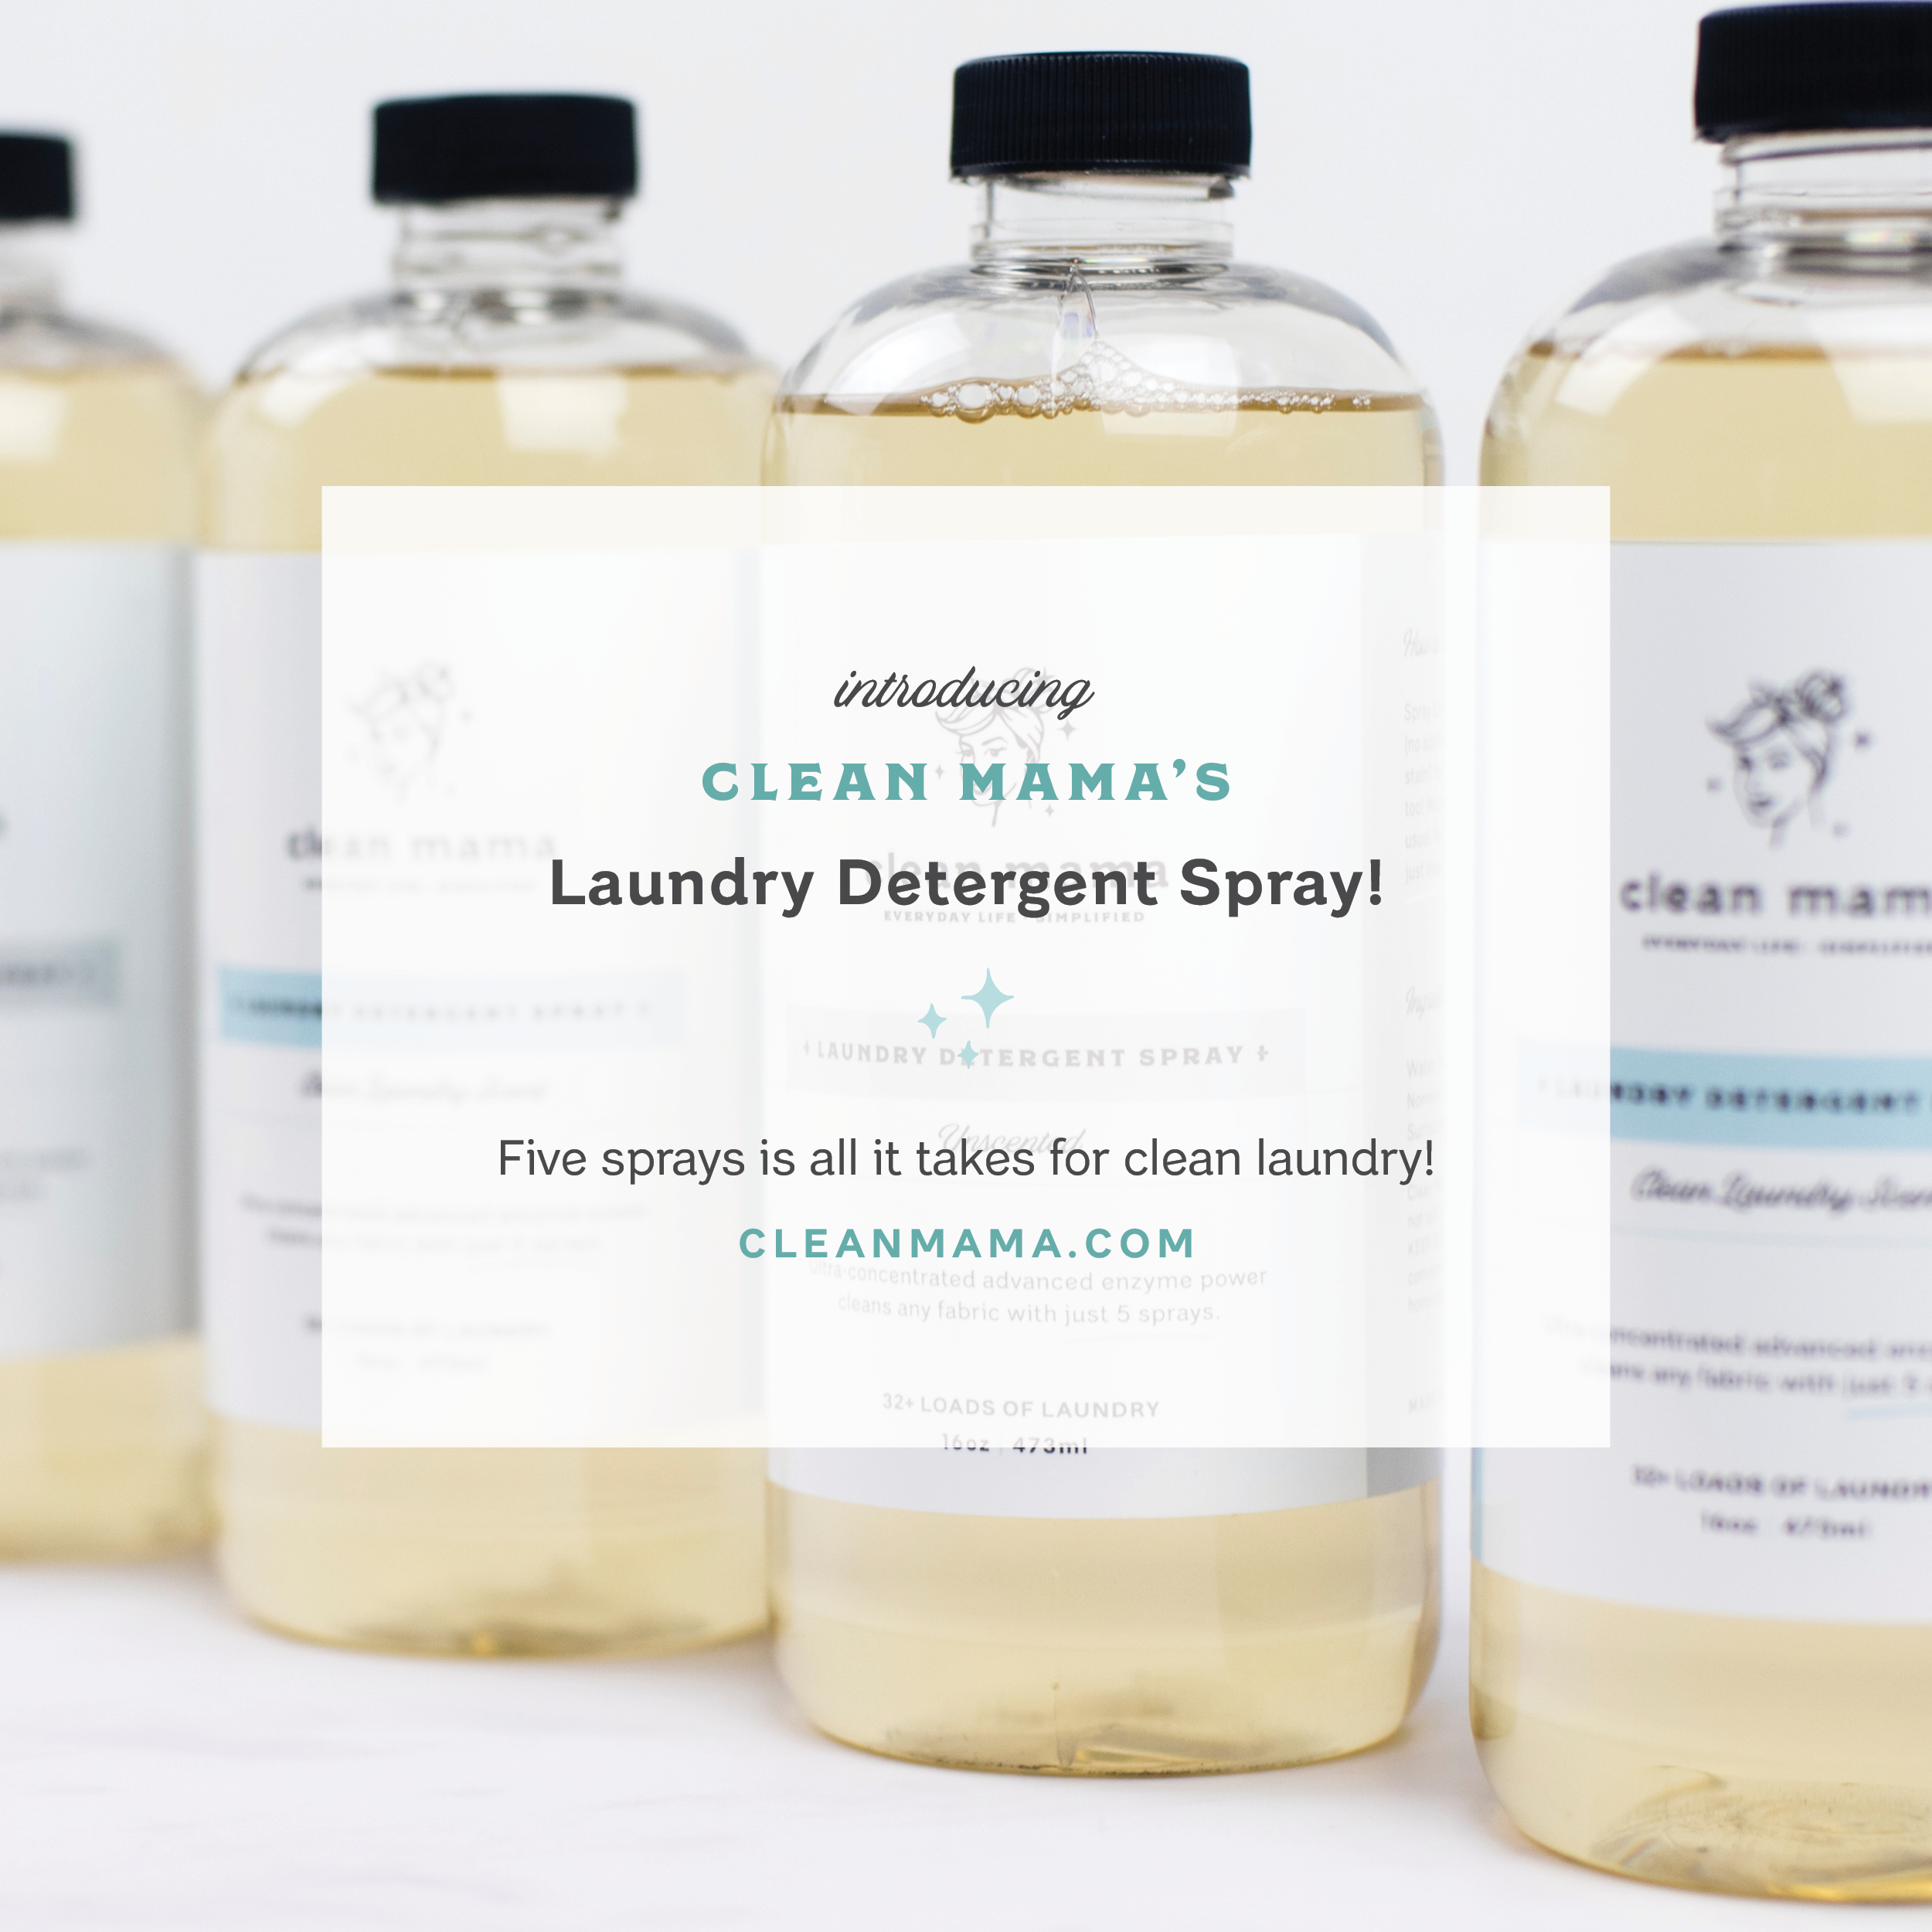 Laundry Detergent Spray Restock, now in Unscented + Clean Laundry Scent, and Subscriptions! – Clean Mama